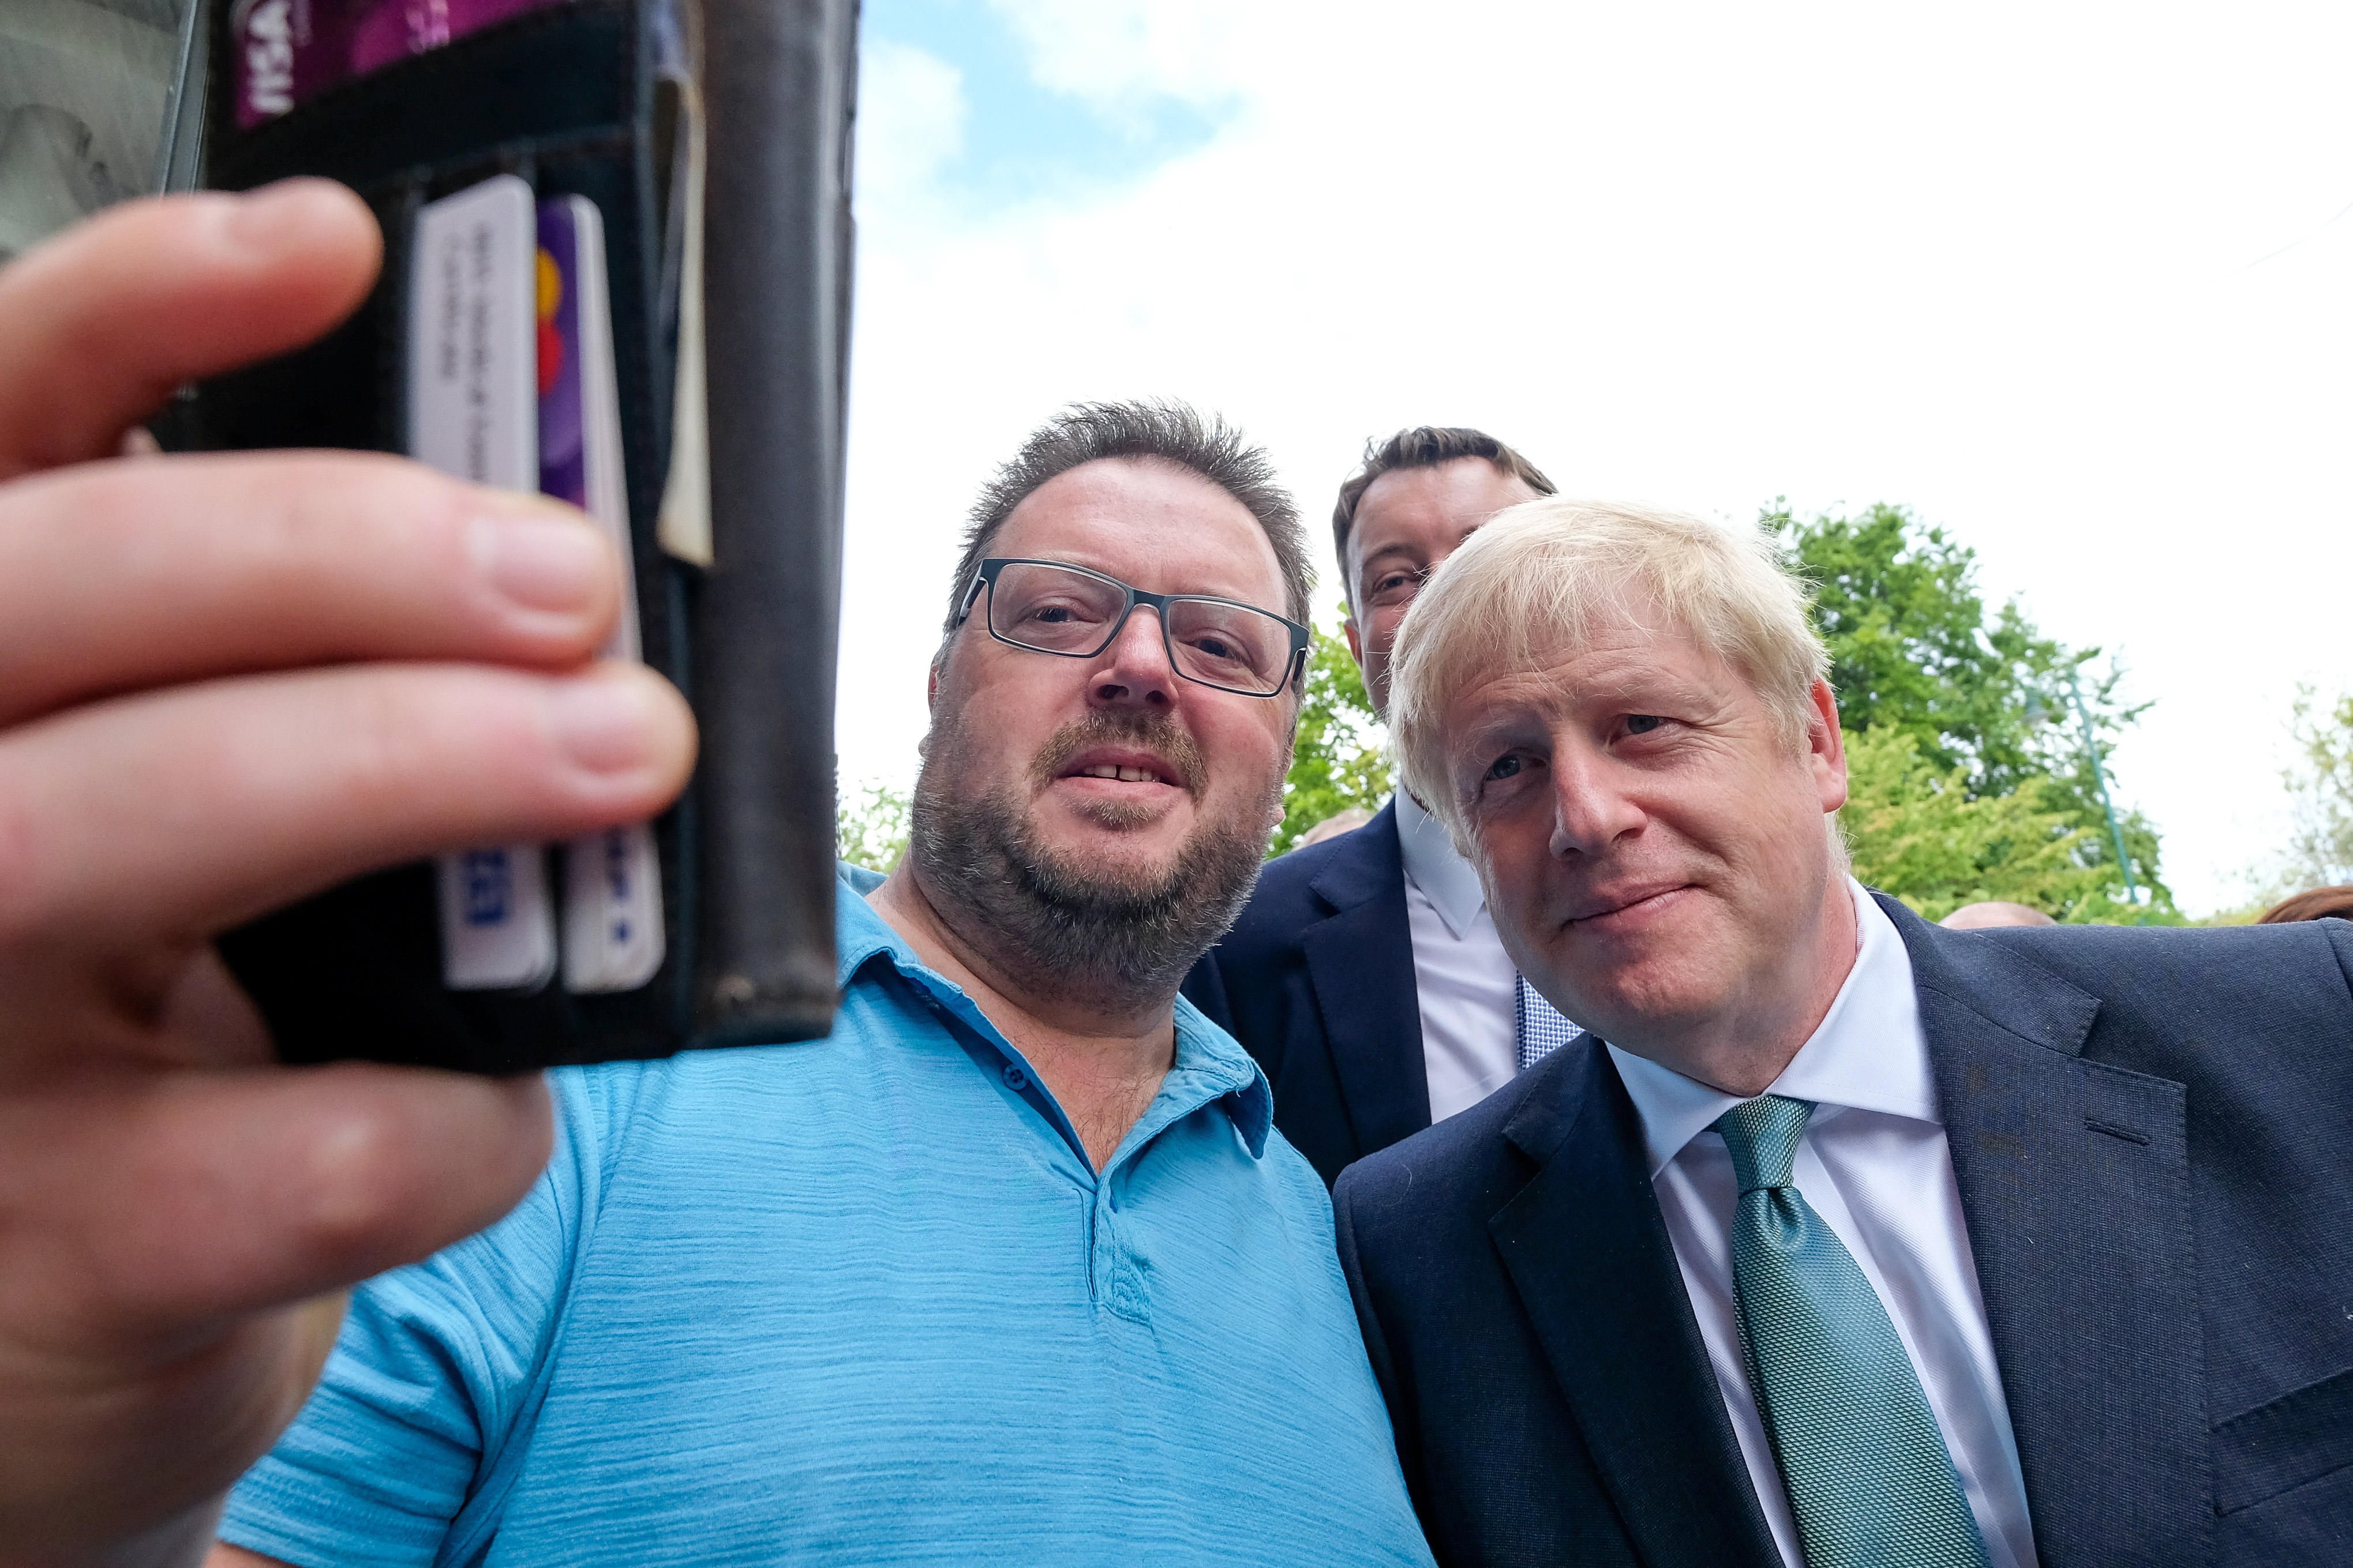 Conservative party leadership candidate Boris Johnson poses for a selfie with a steelworker during a visit to Guisborough, North Yorkshire.